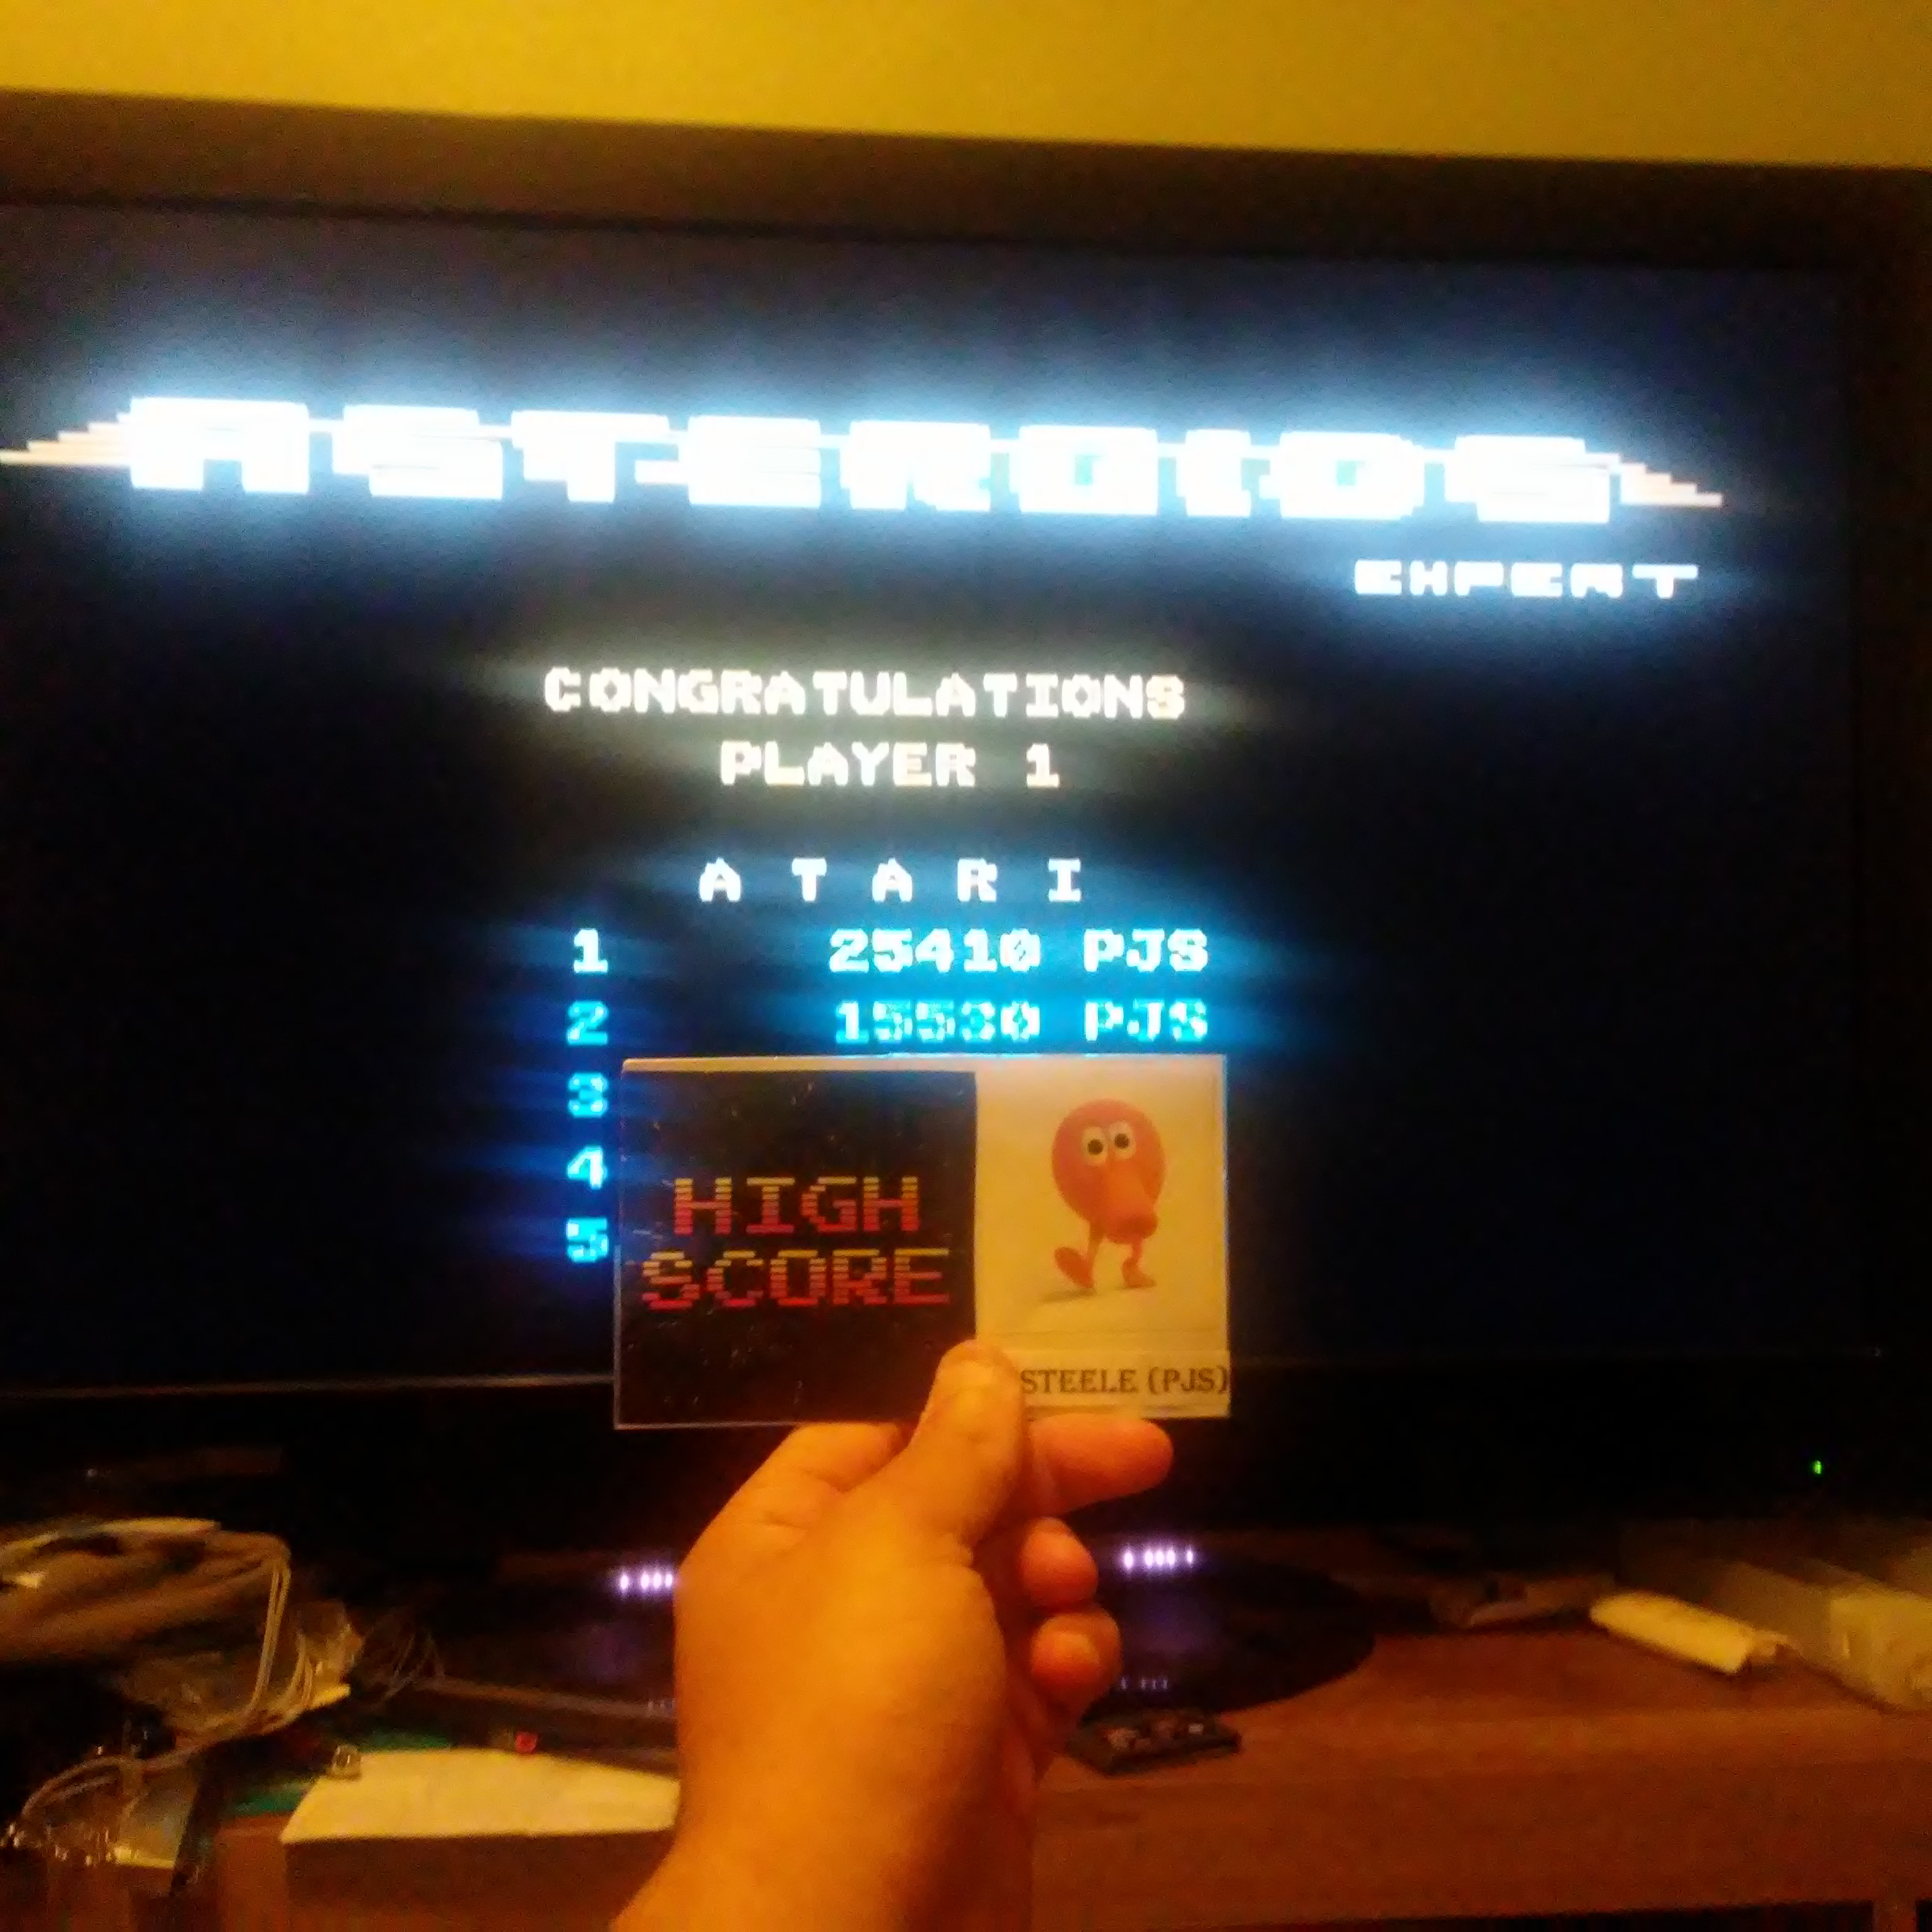 Pjsteele: Asteroids: Expert (Atari 7800 Emulated) 25,410 points on 2017-07-19 21:40:43